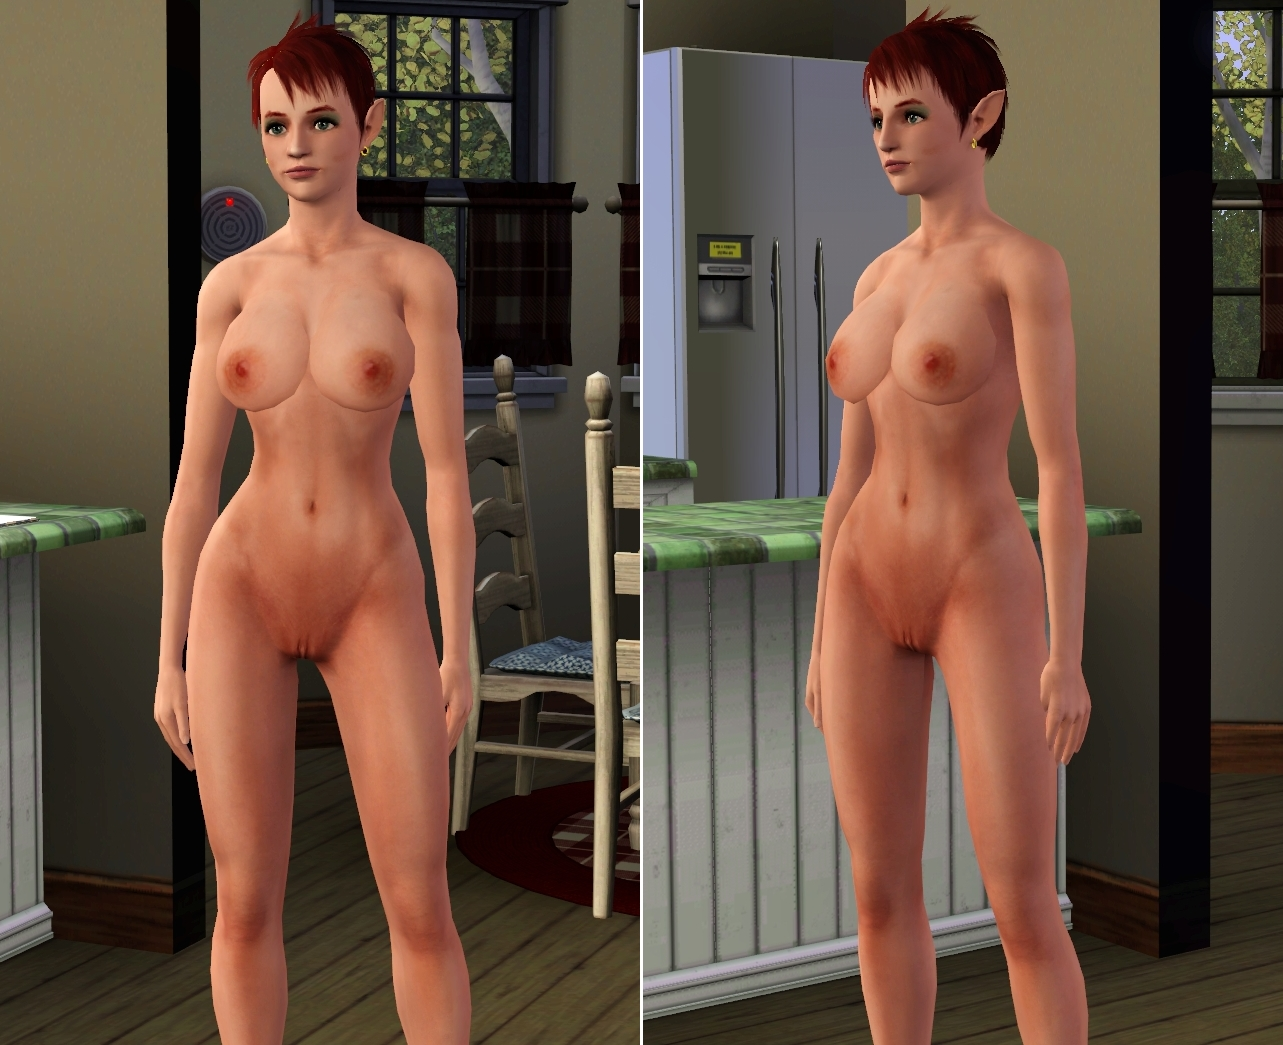 Sims3 nude legal patch pron pics